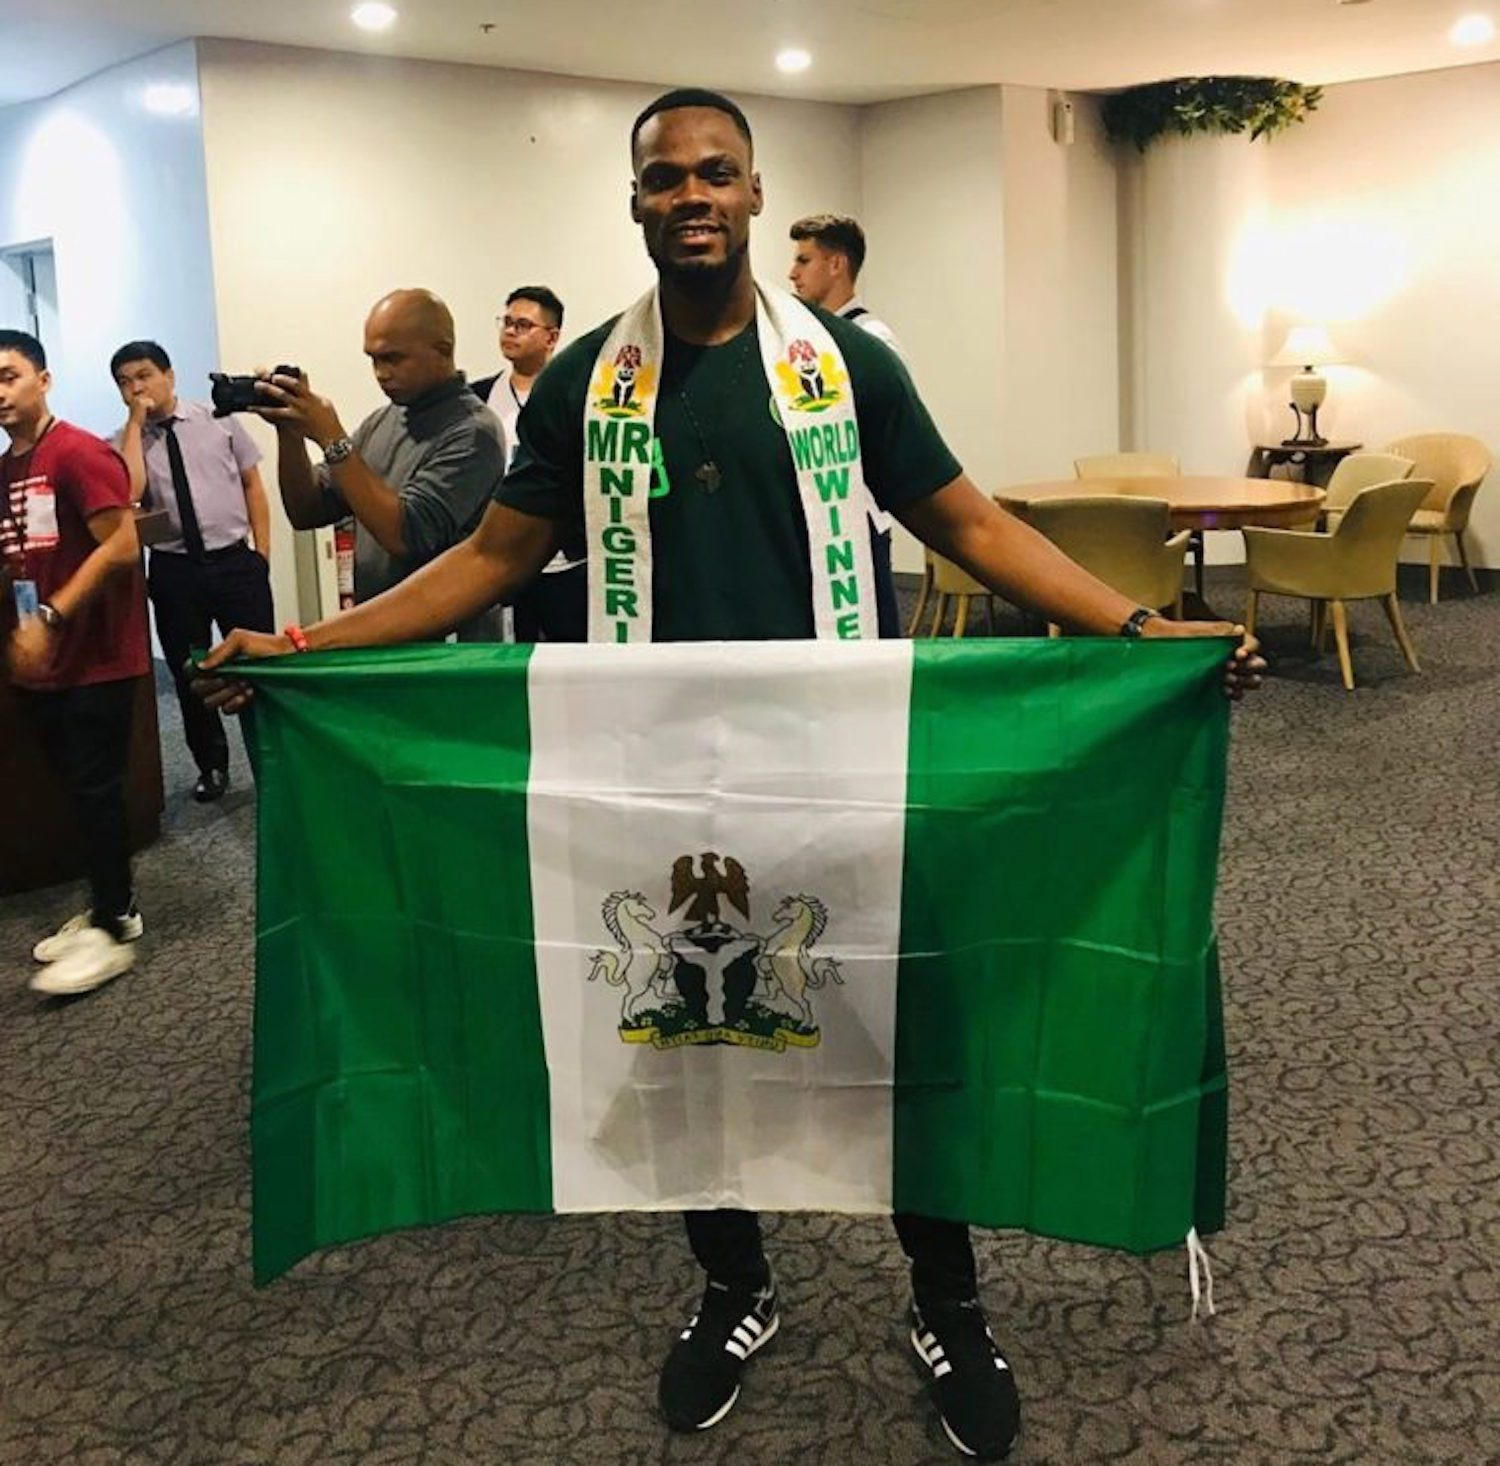 Mr Nigeria begs for more votes to win Mr World – Vanguard News